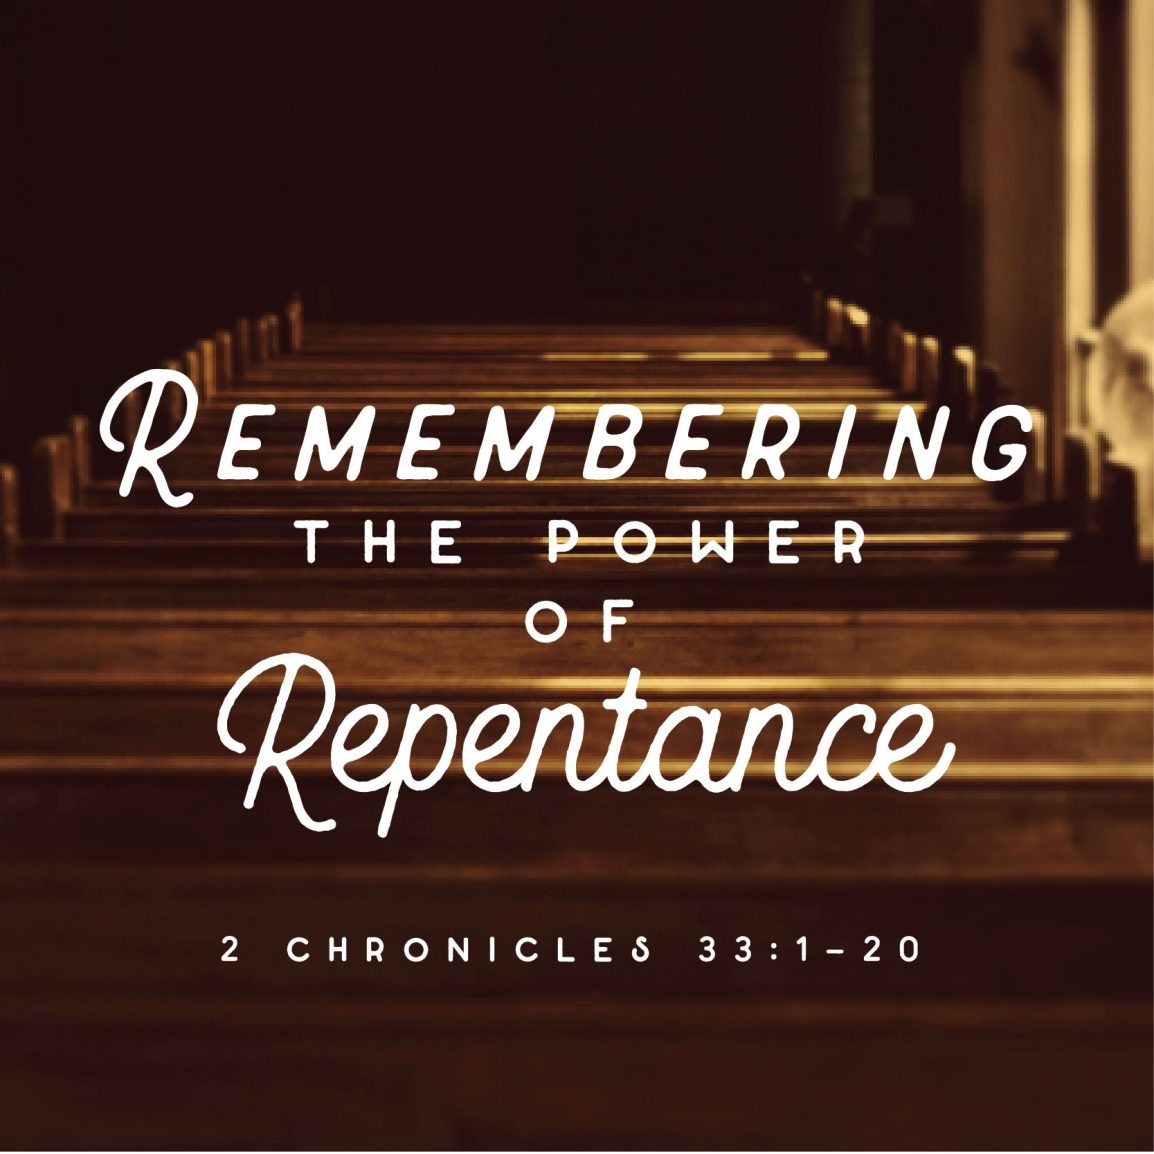 Remembering the Power of Repentance: 2 Chronicles 23:1-20